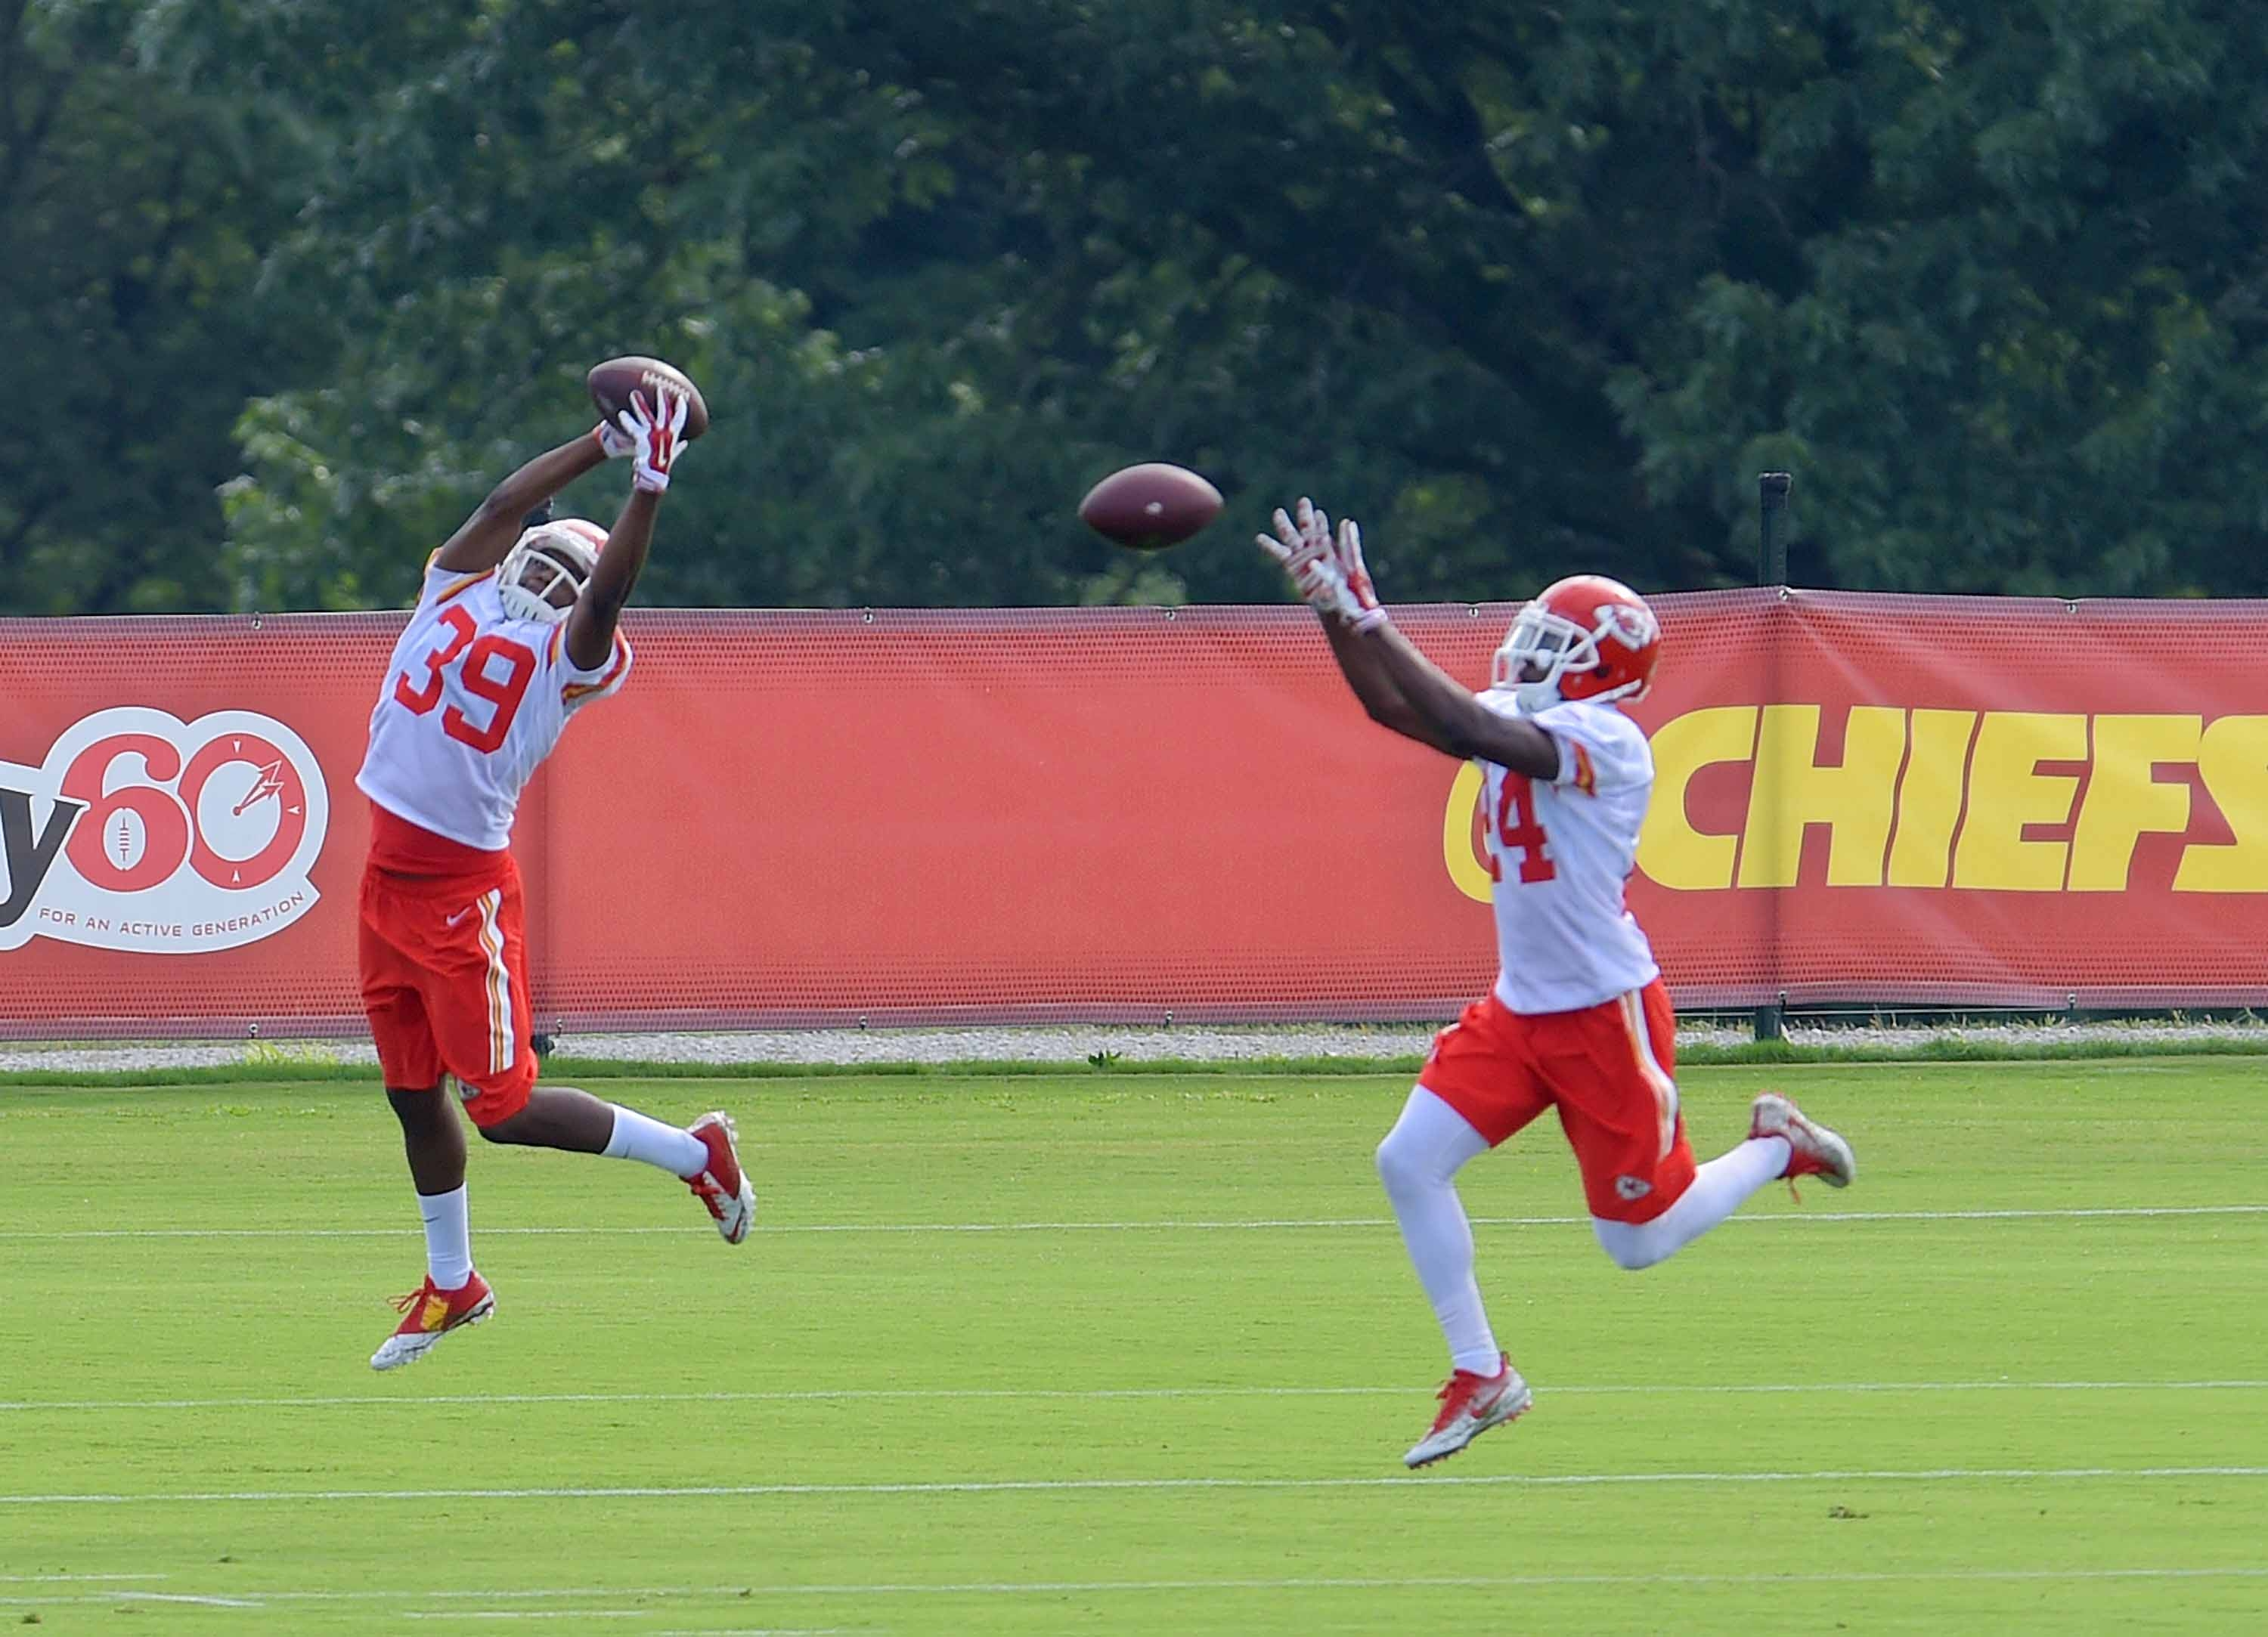 Kansas City Chiefs cornerback Shannon Edwards (39) and defensive back D.J. White run drills during NFL football training camp Thursday, July 28, 2016, in St. Joseph, Mo. (Jessica A. Stewart/St. Joseph News-Press via AP)